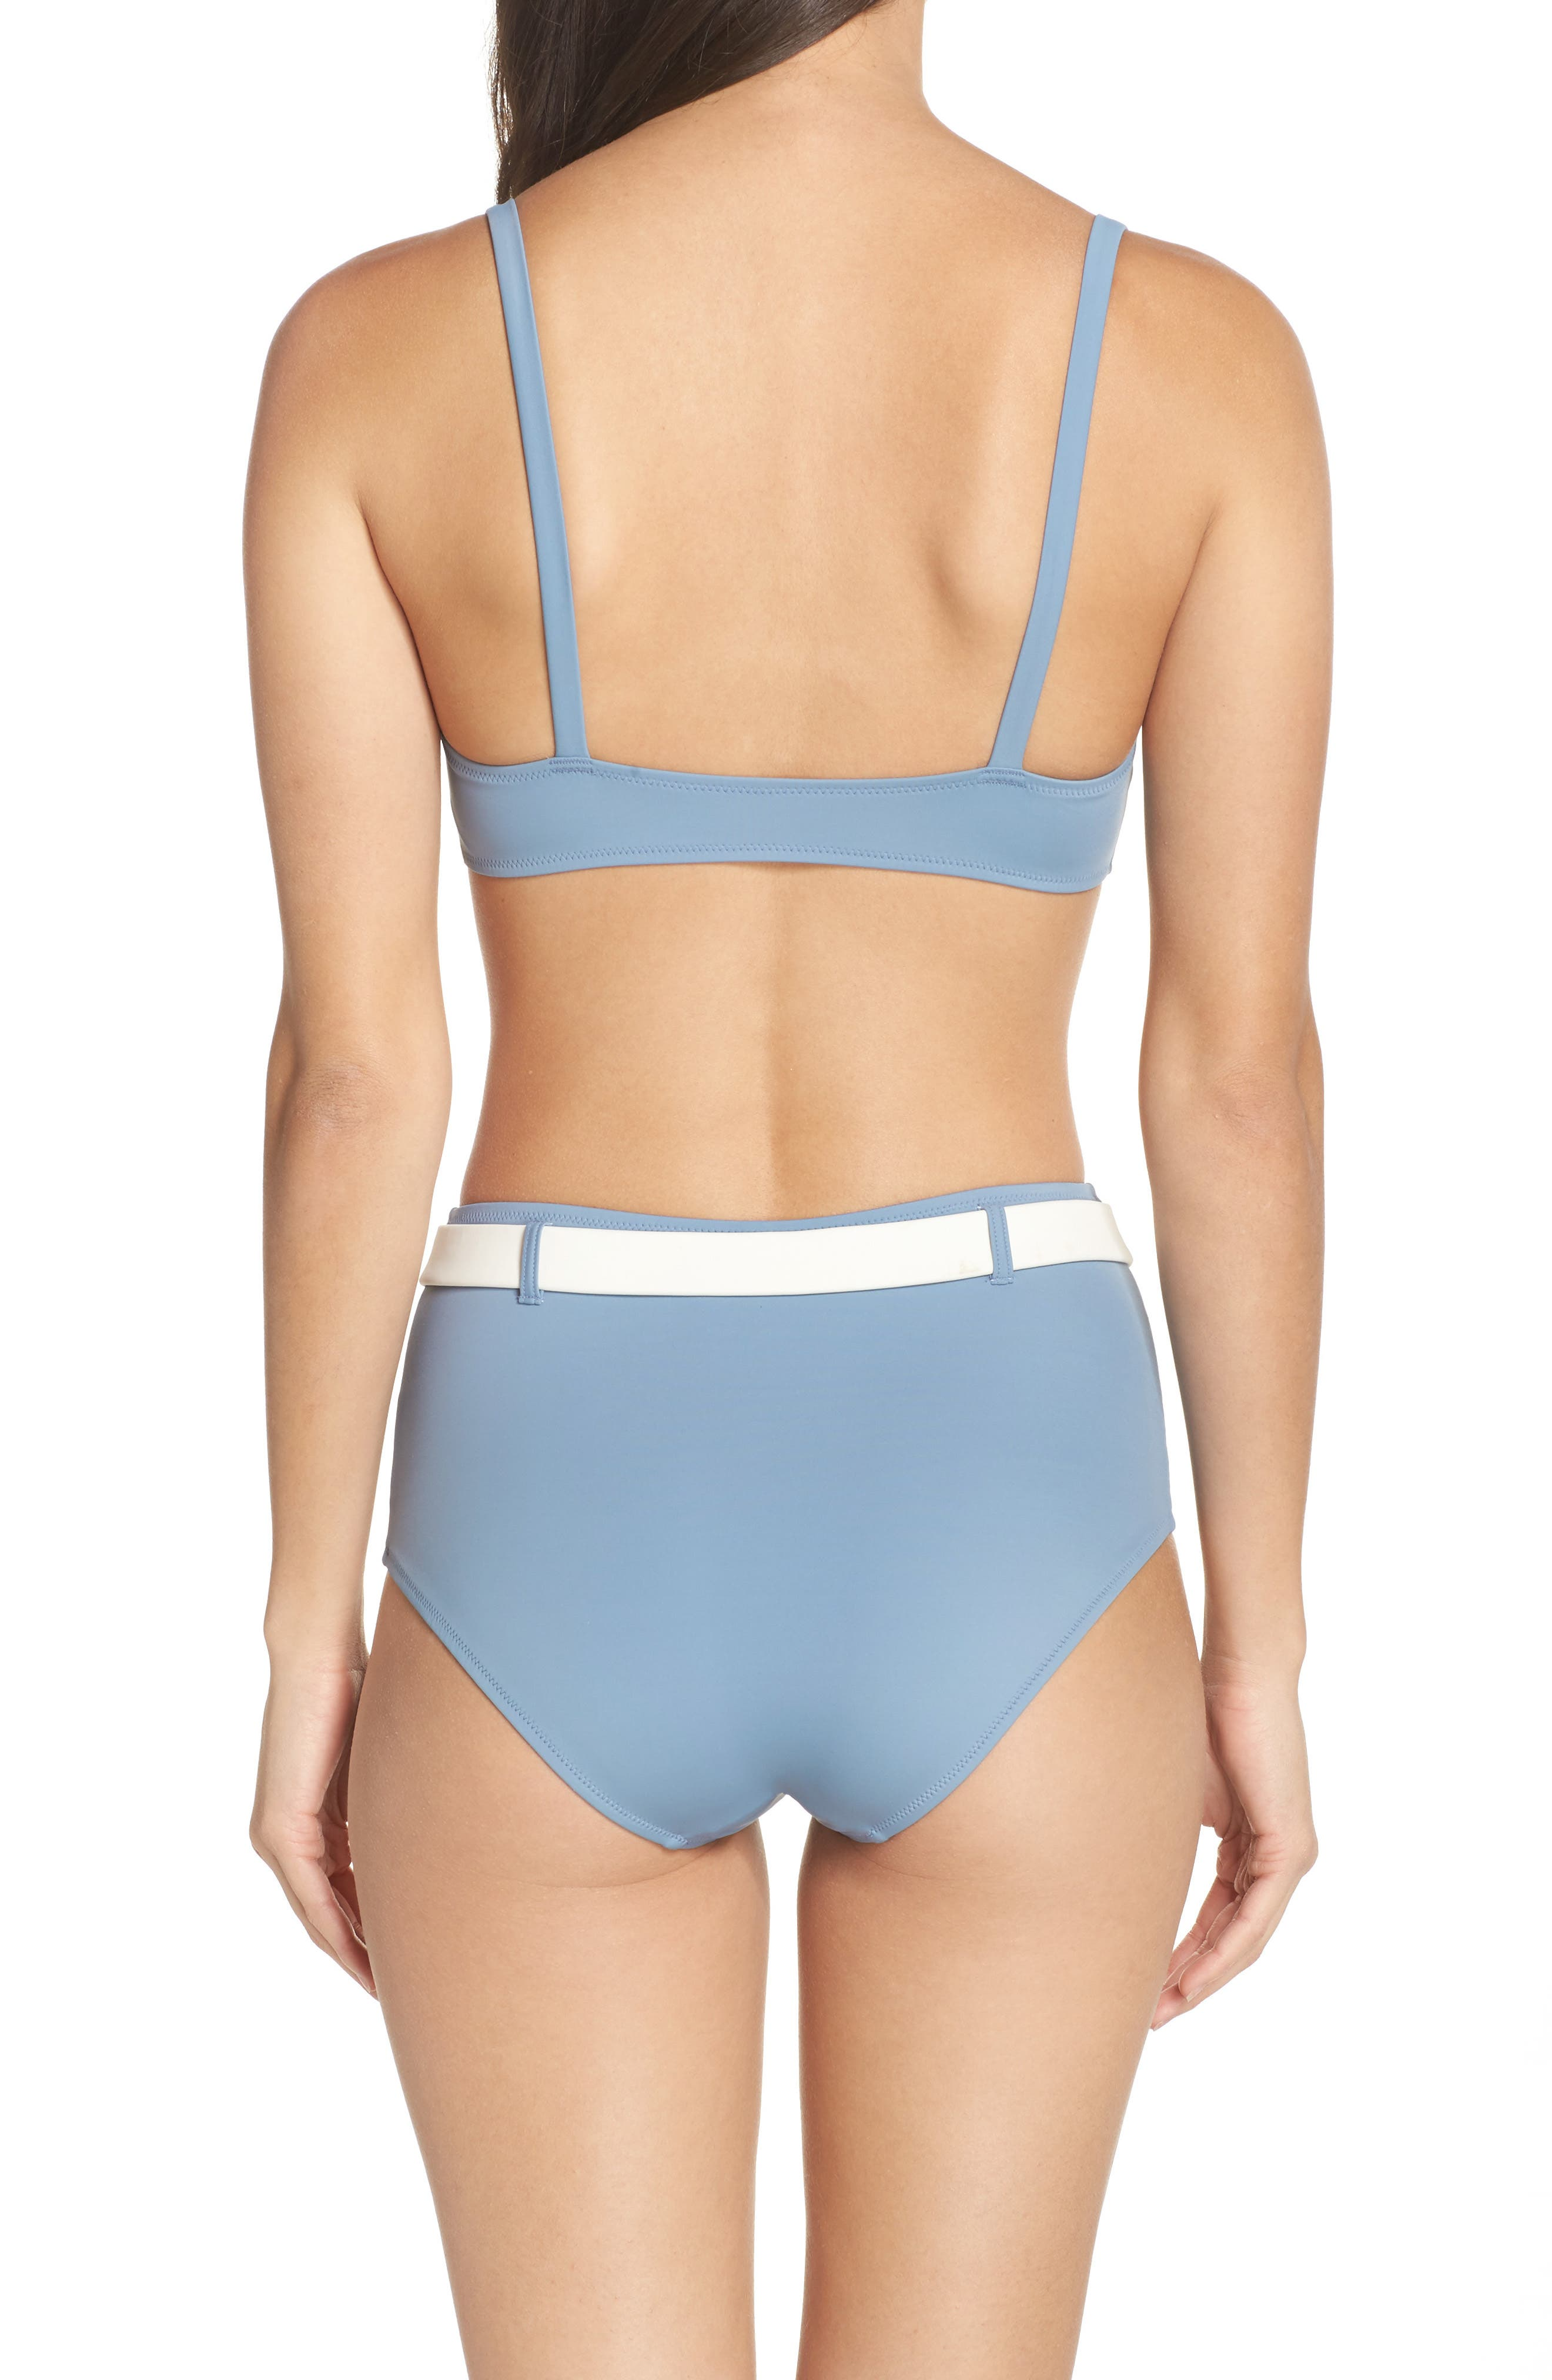 The Quinn Belted High Waist Bikini Bottoms,                             Alternate thumbnail 8, color,                             459